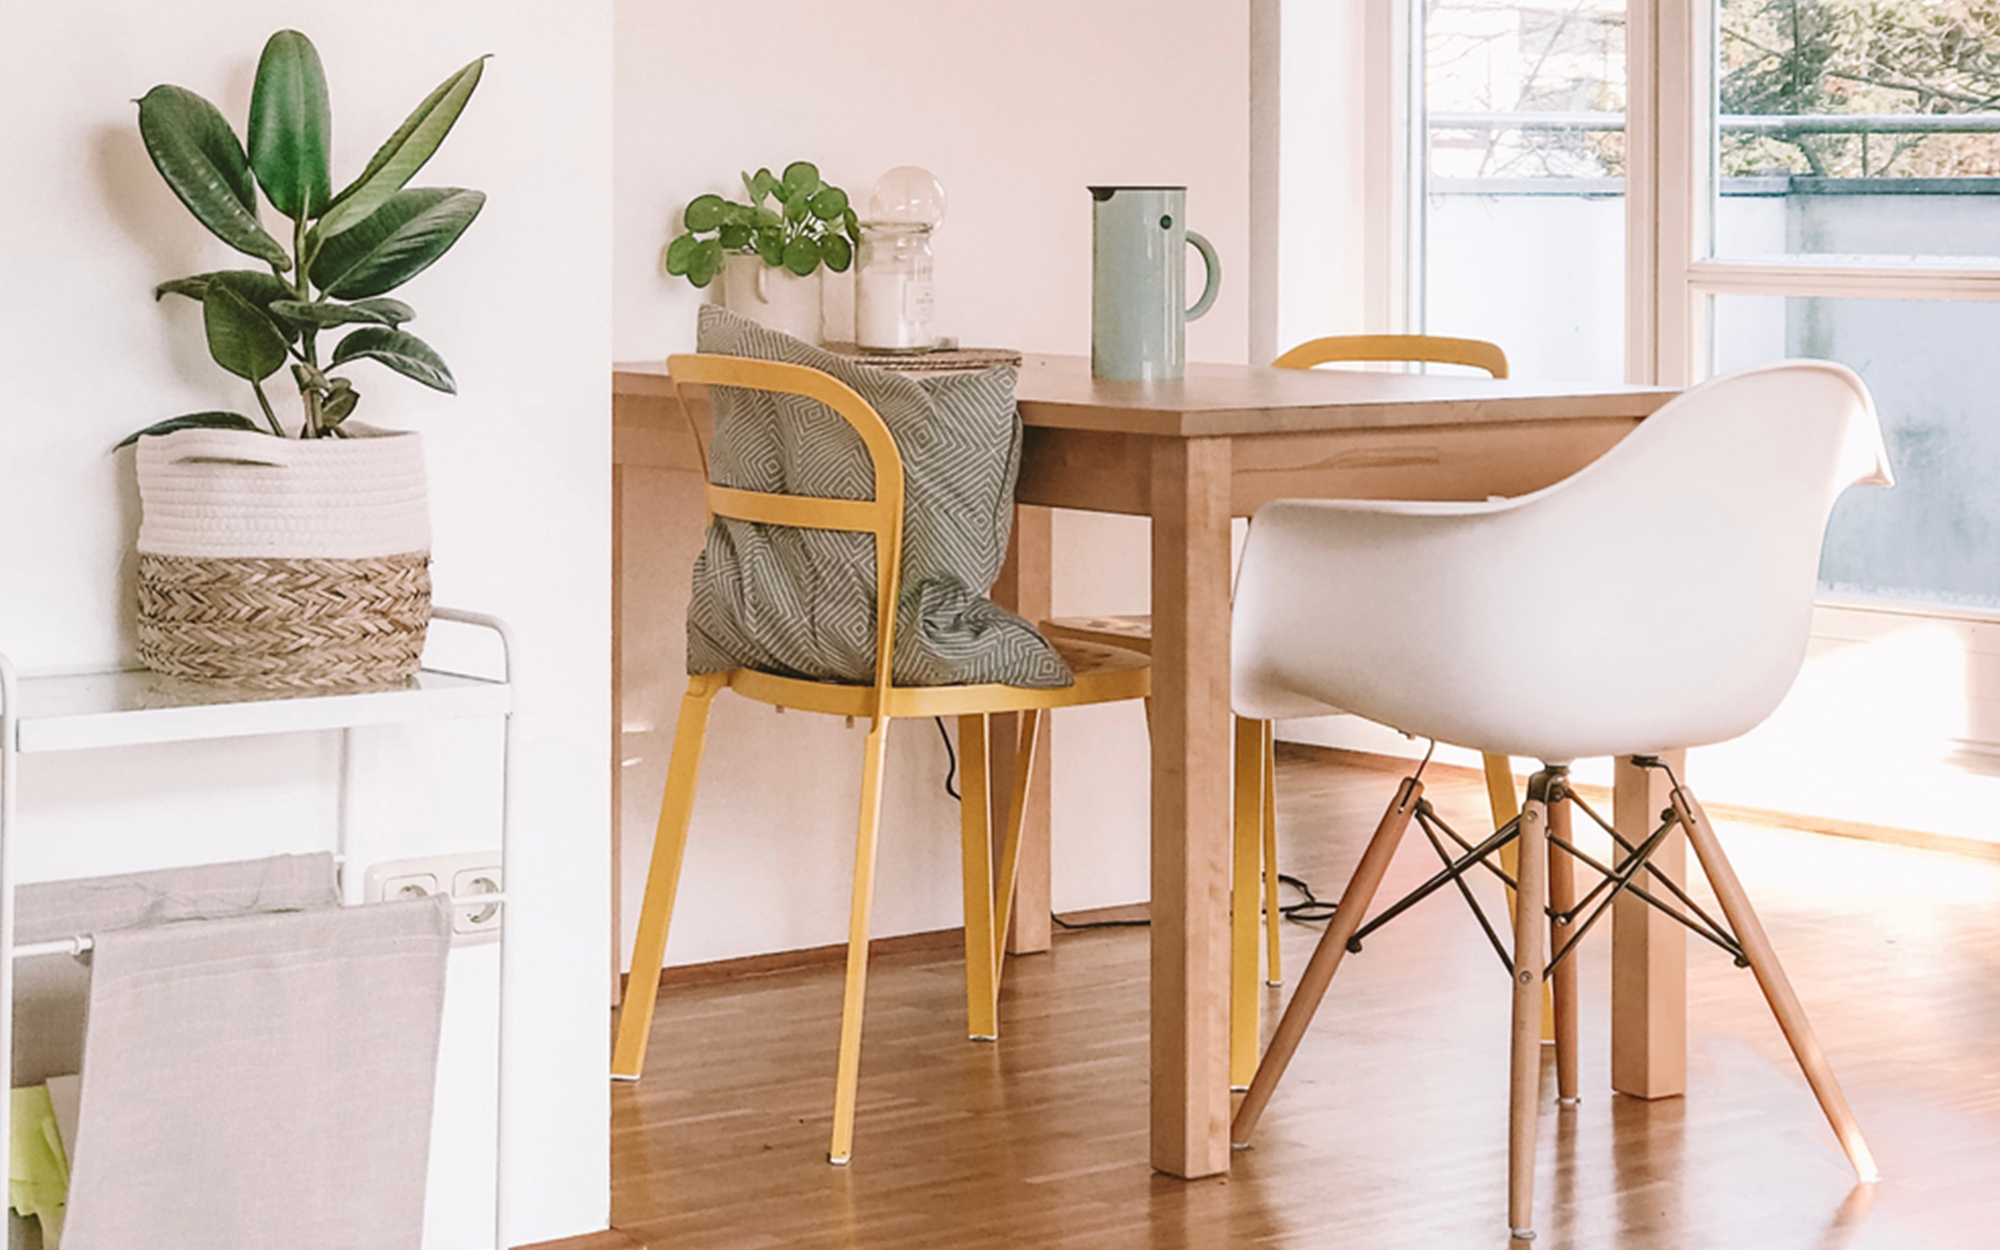 Eames DAW Chair in Scandi Inspired Interior